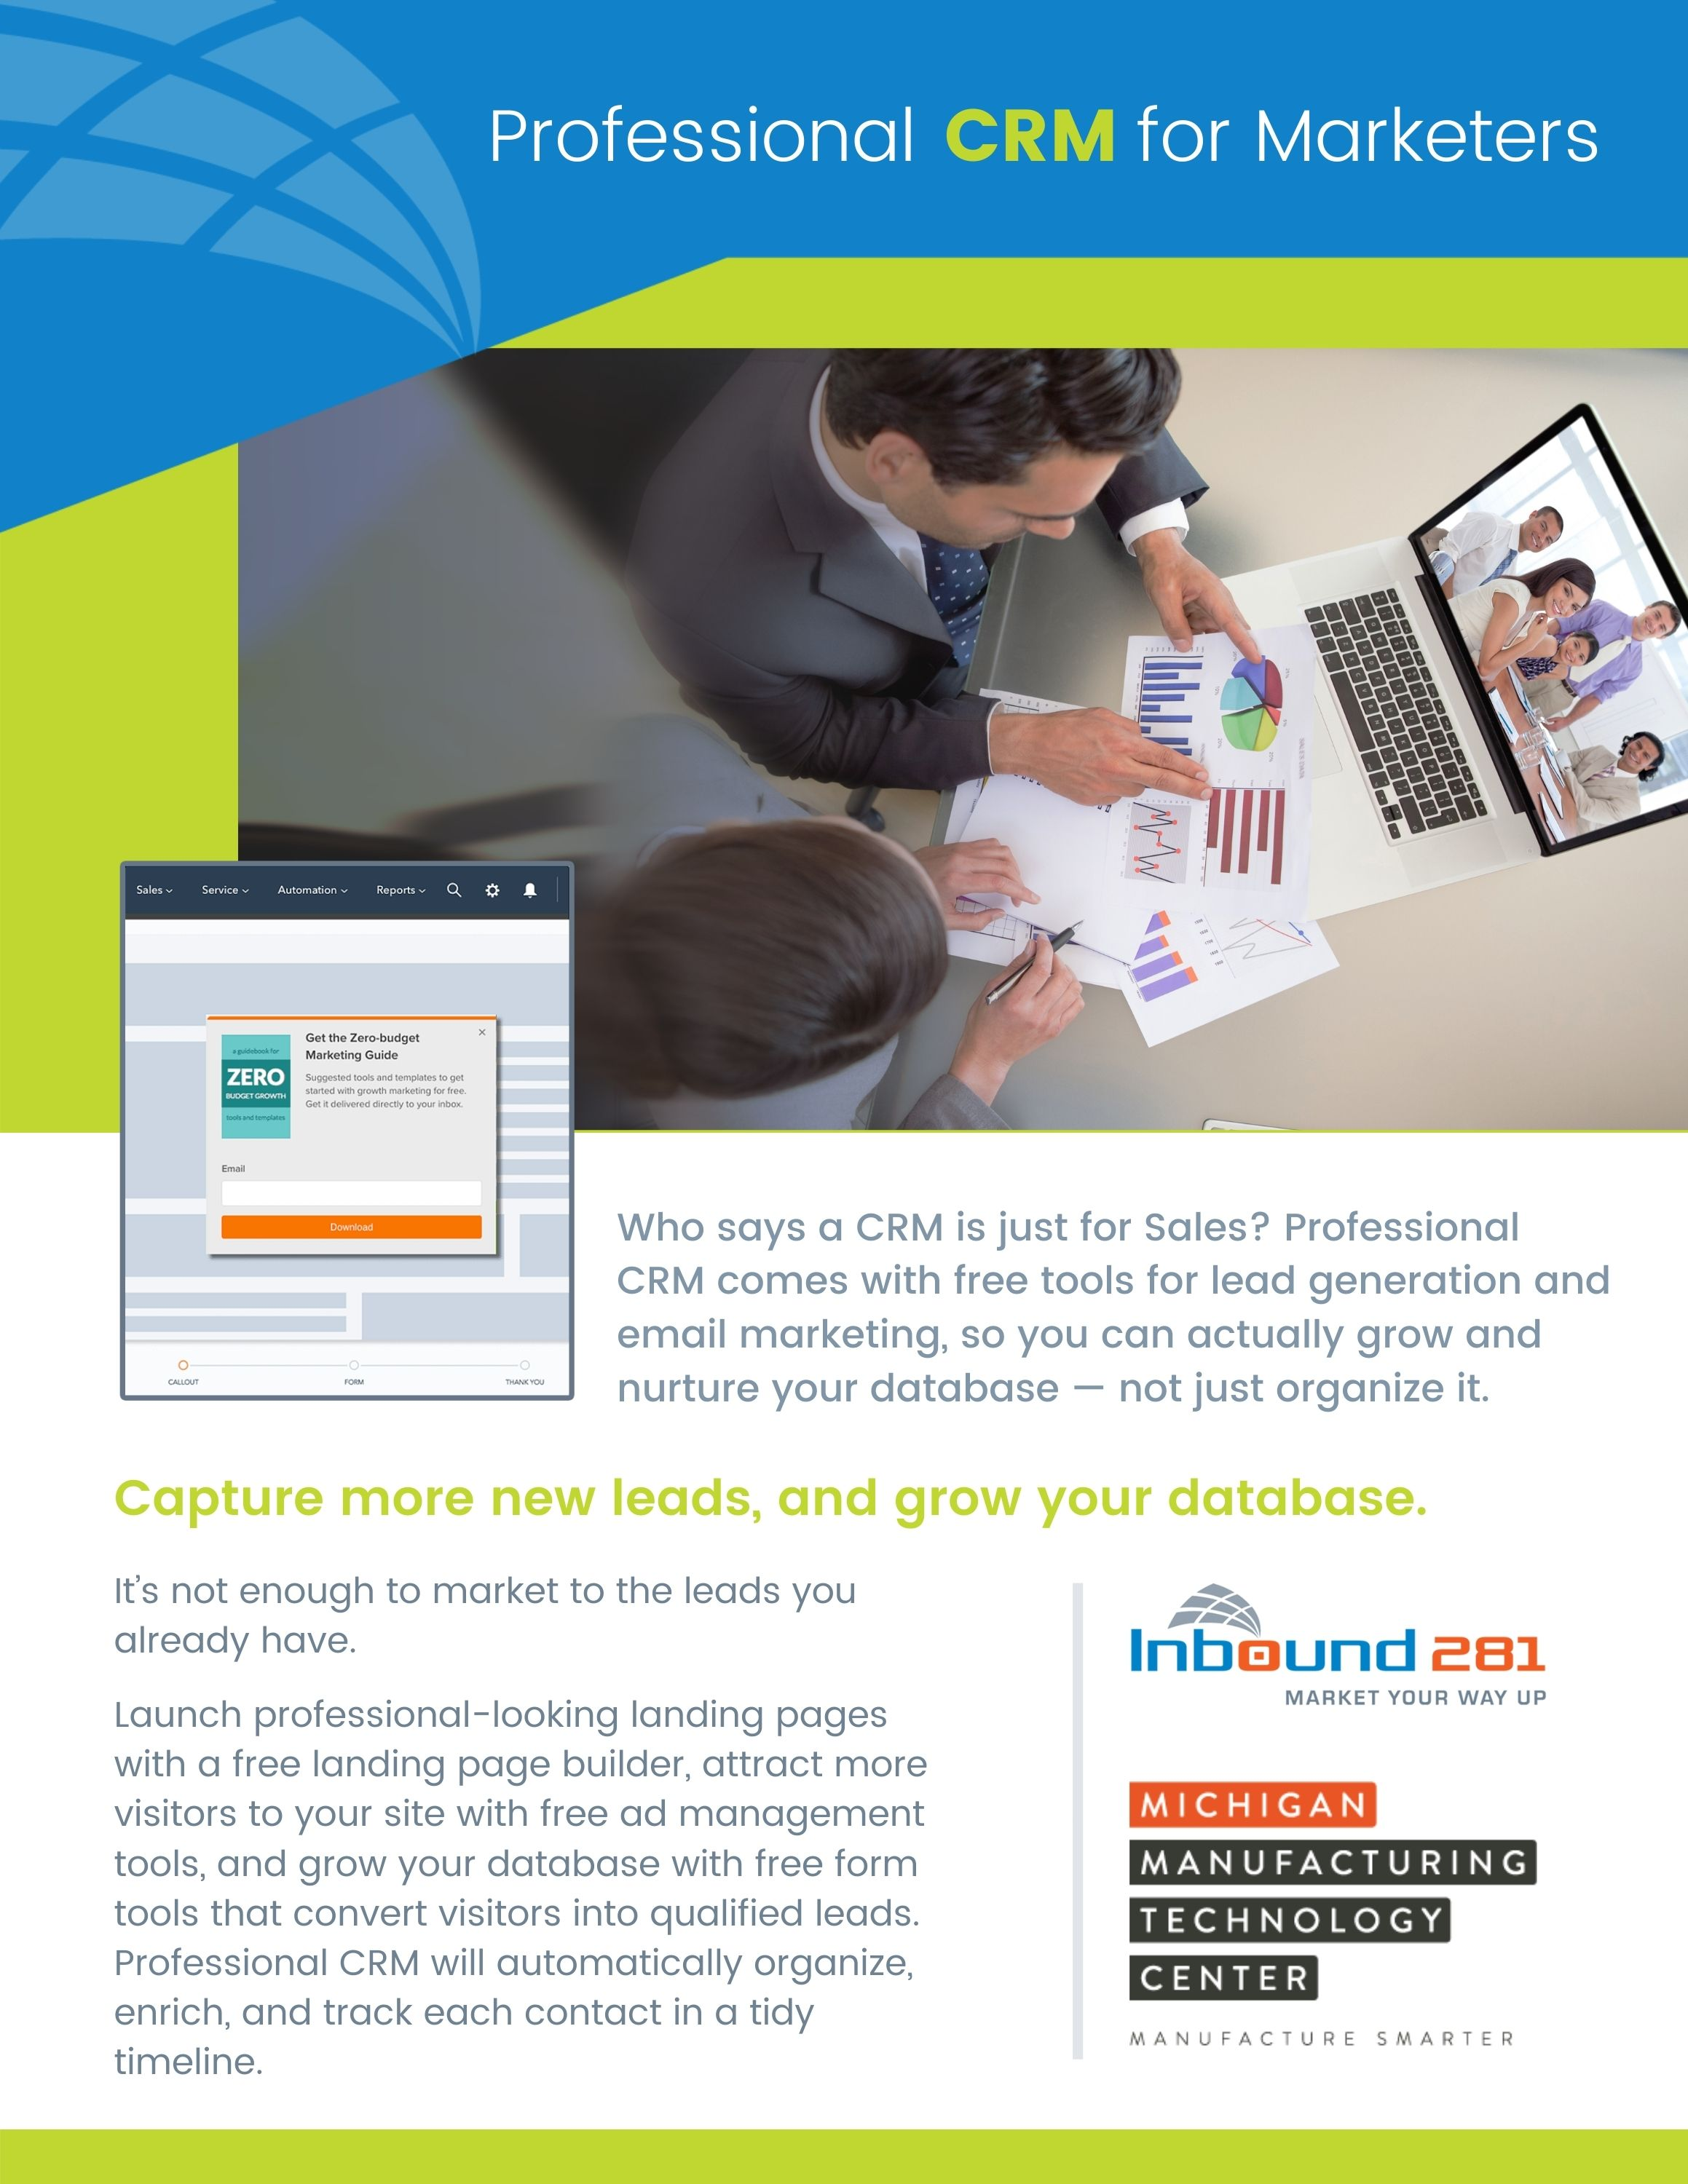 Professional CRM for Marketers